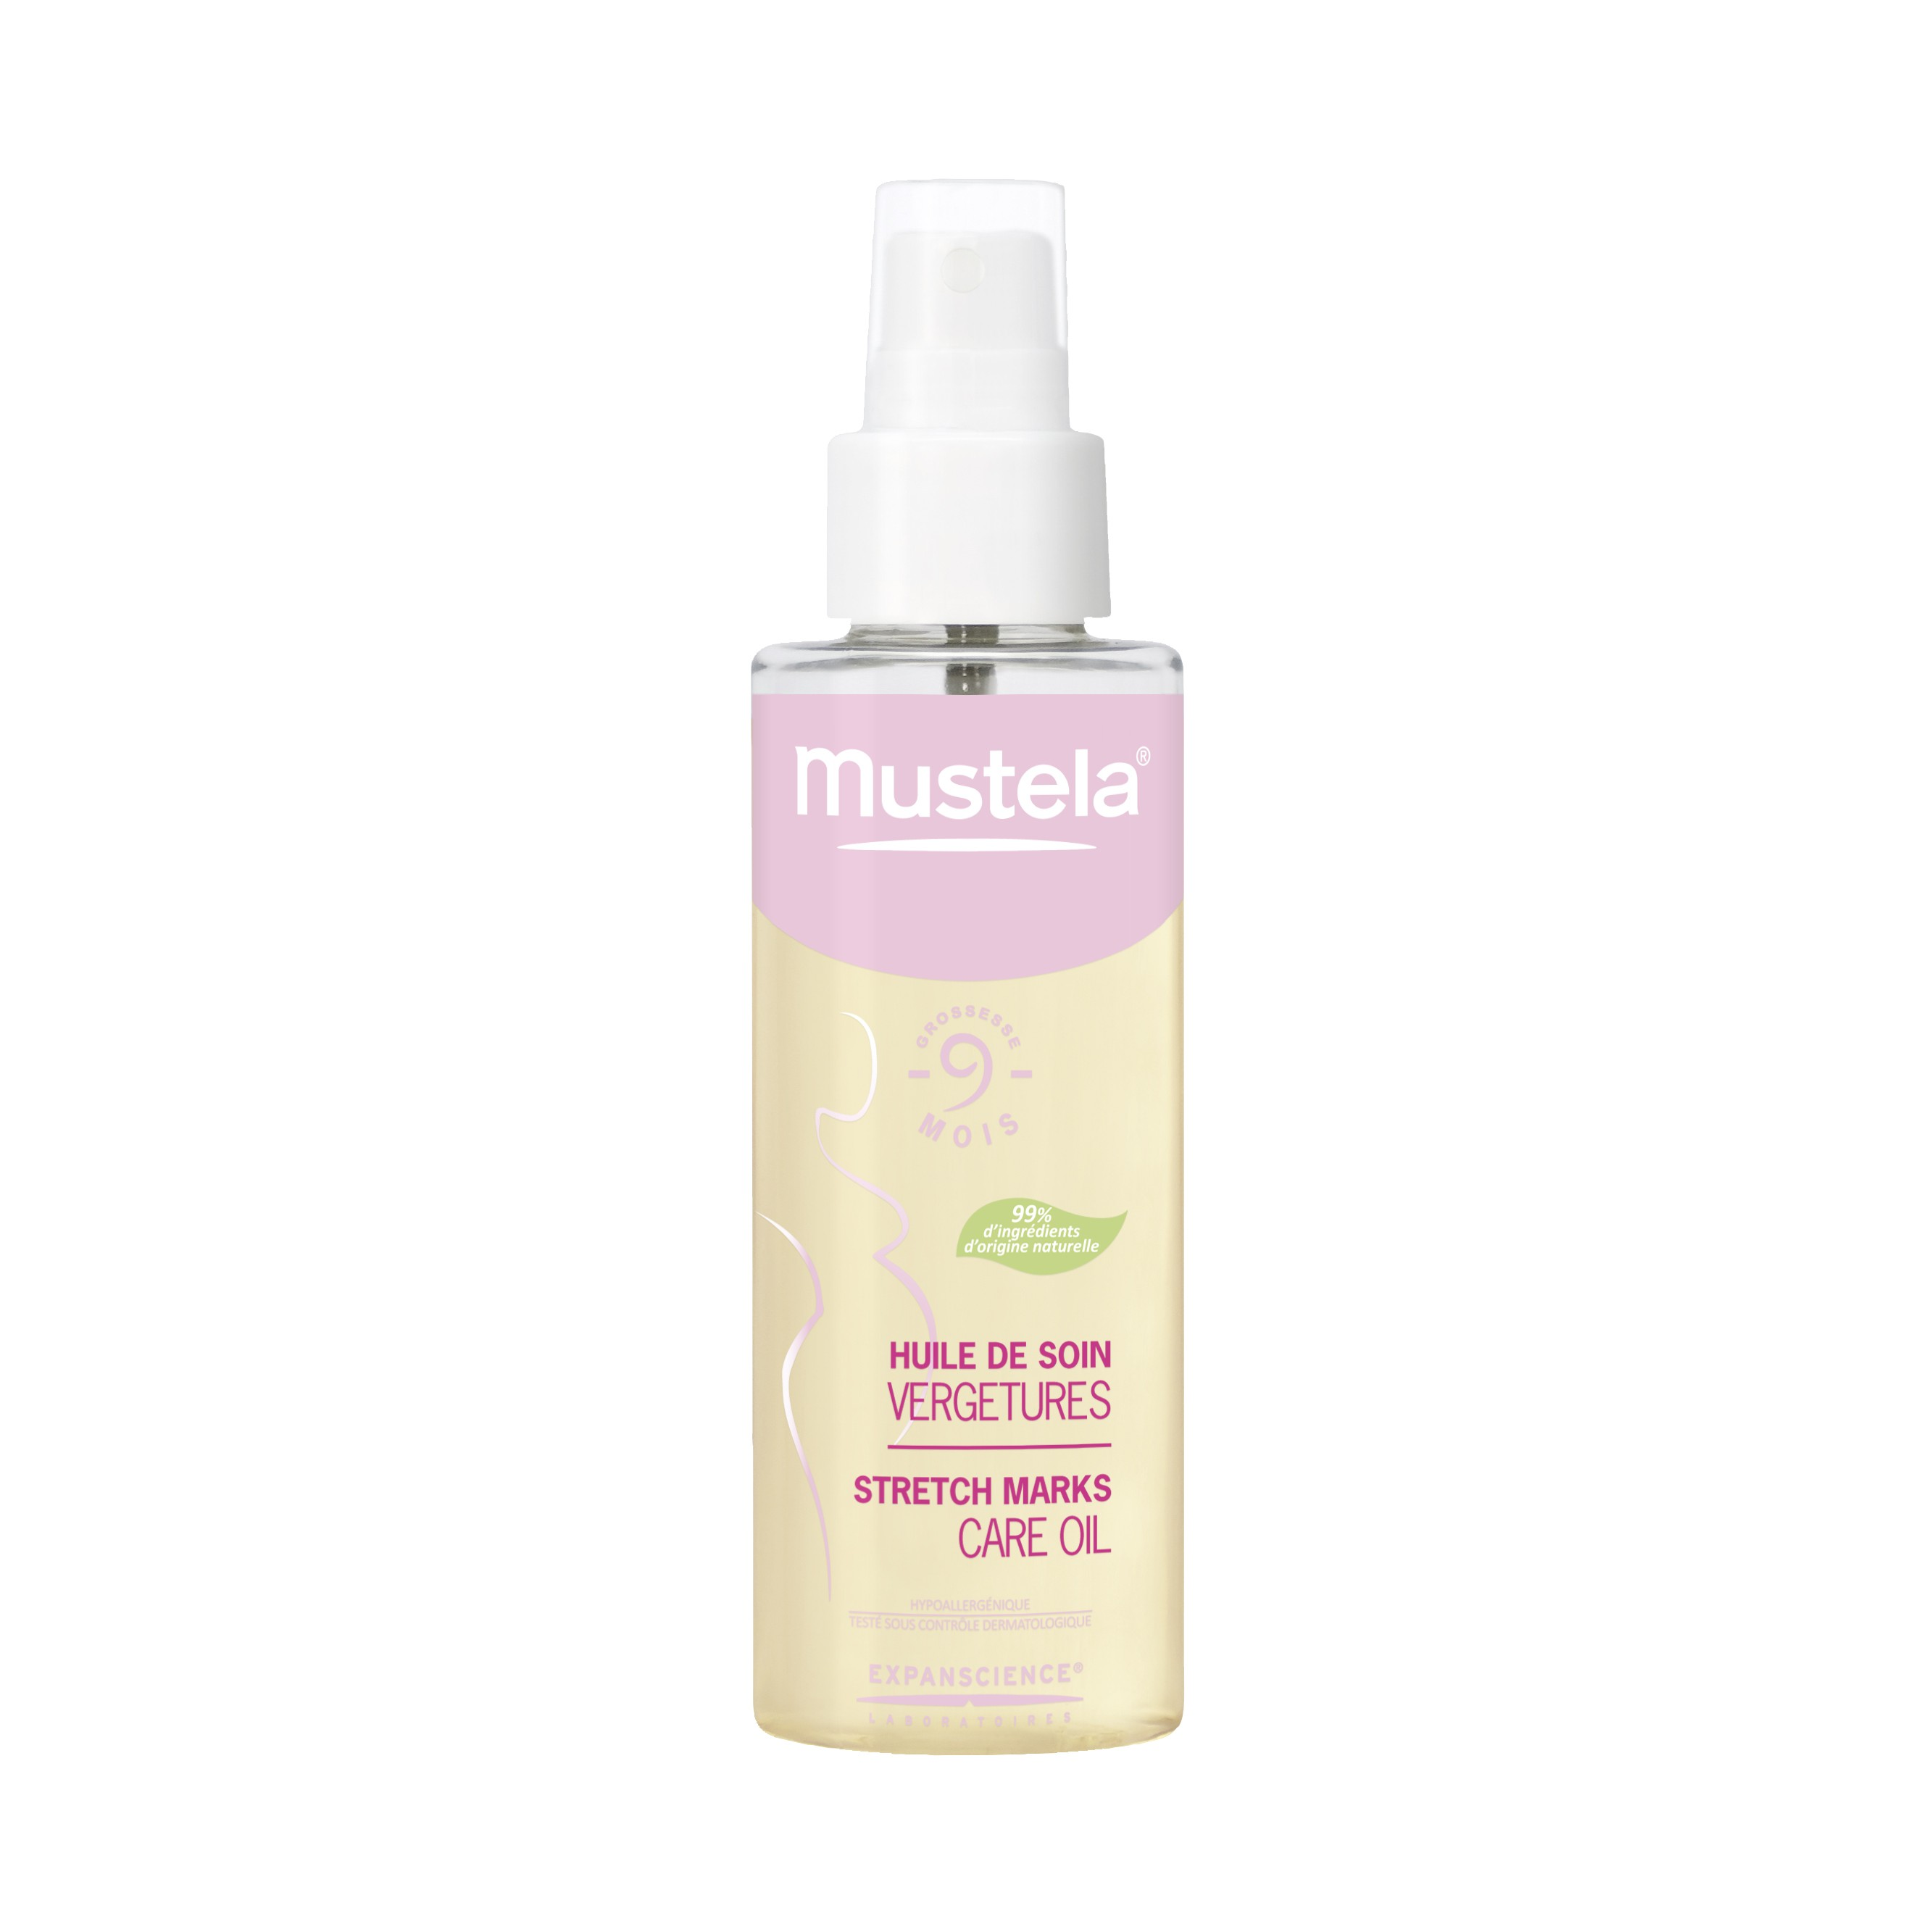 Mustela Bebe Stretch Marks Care Oil review